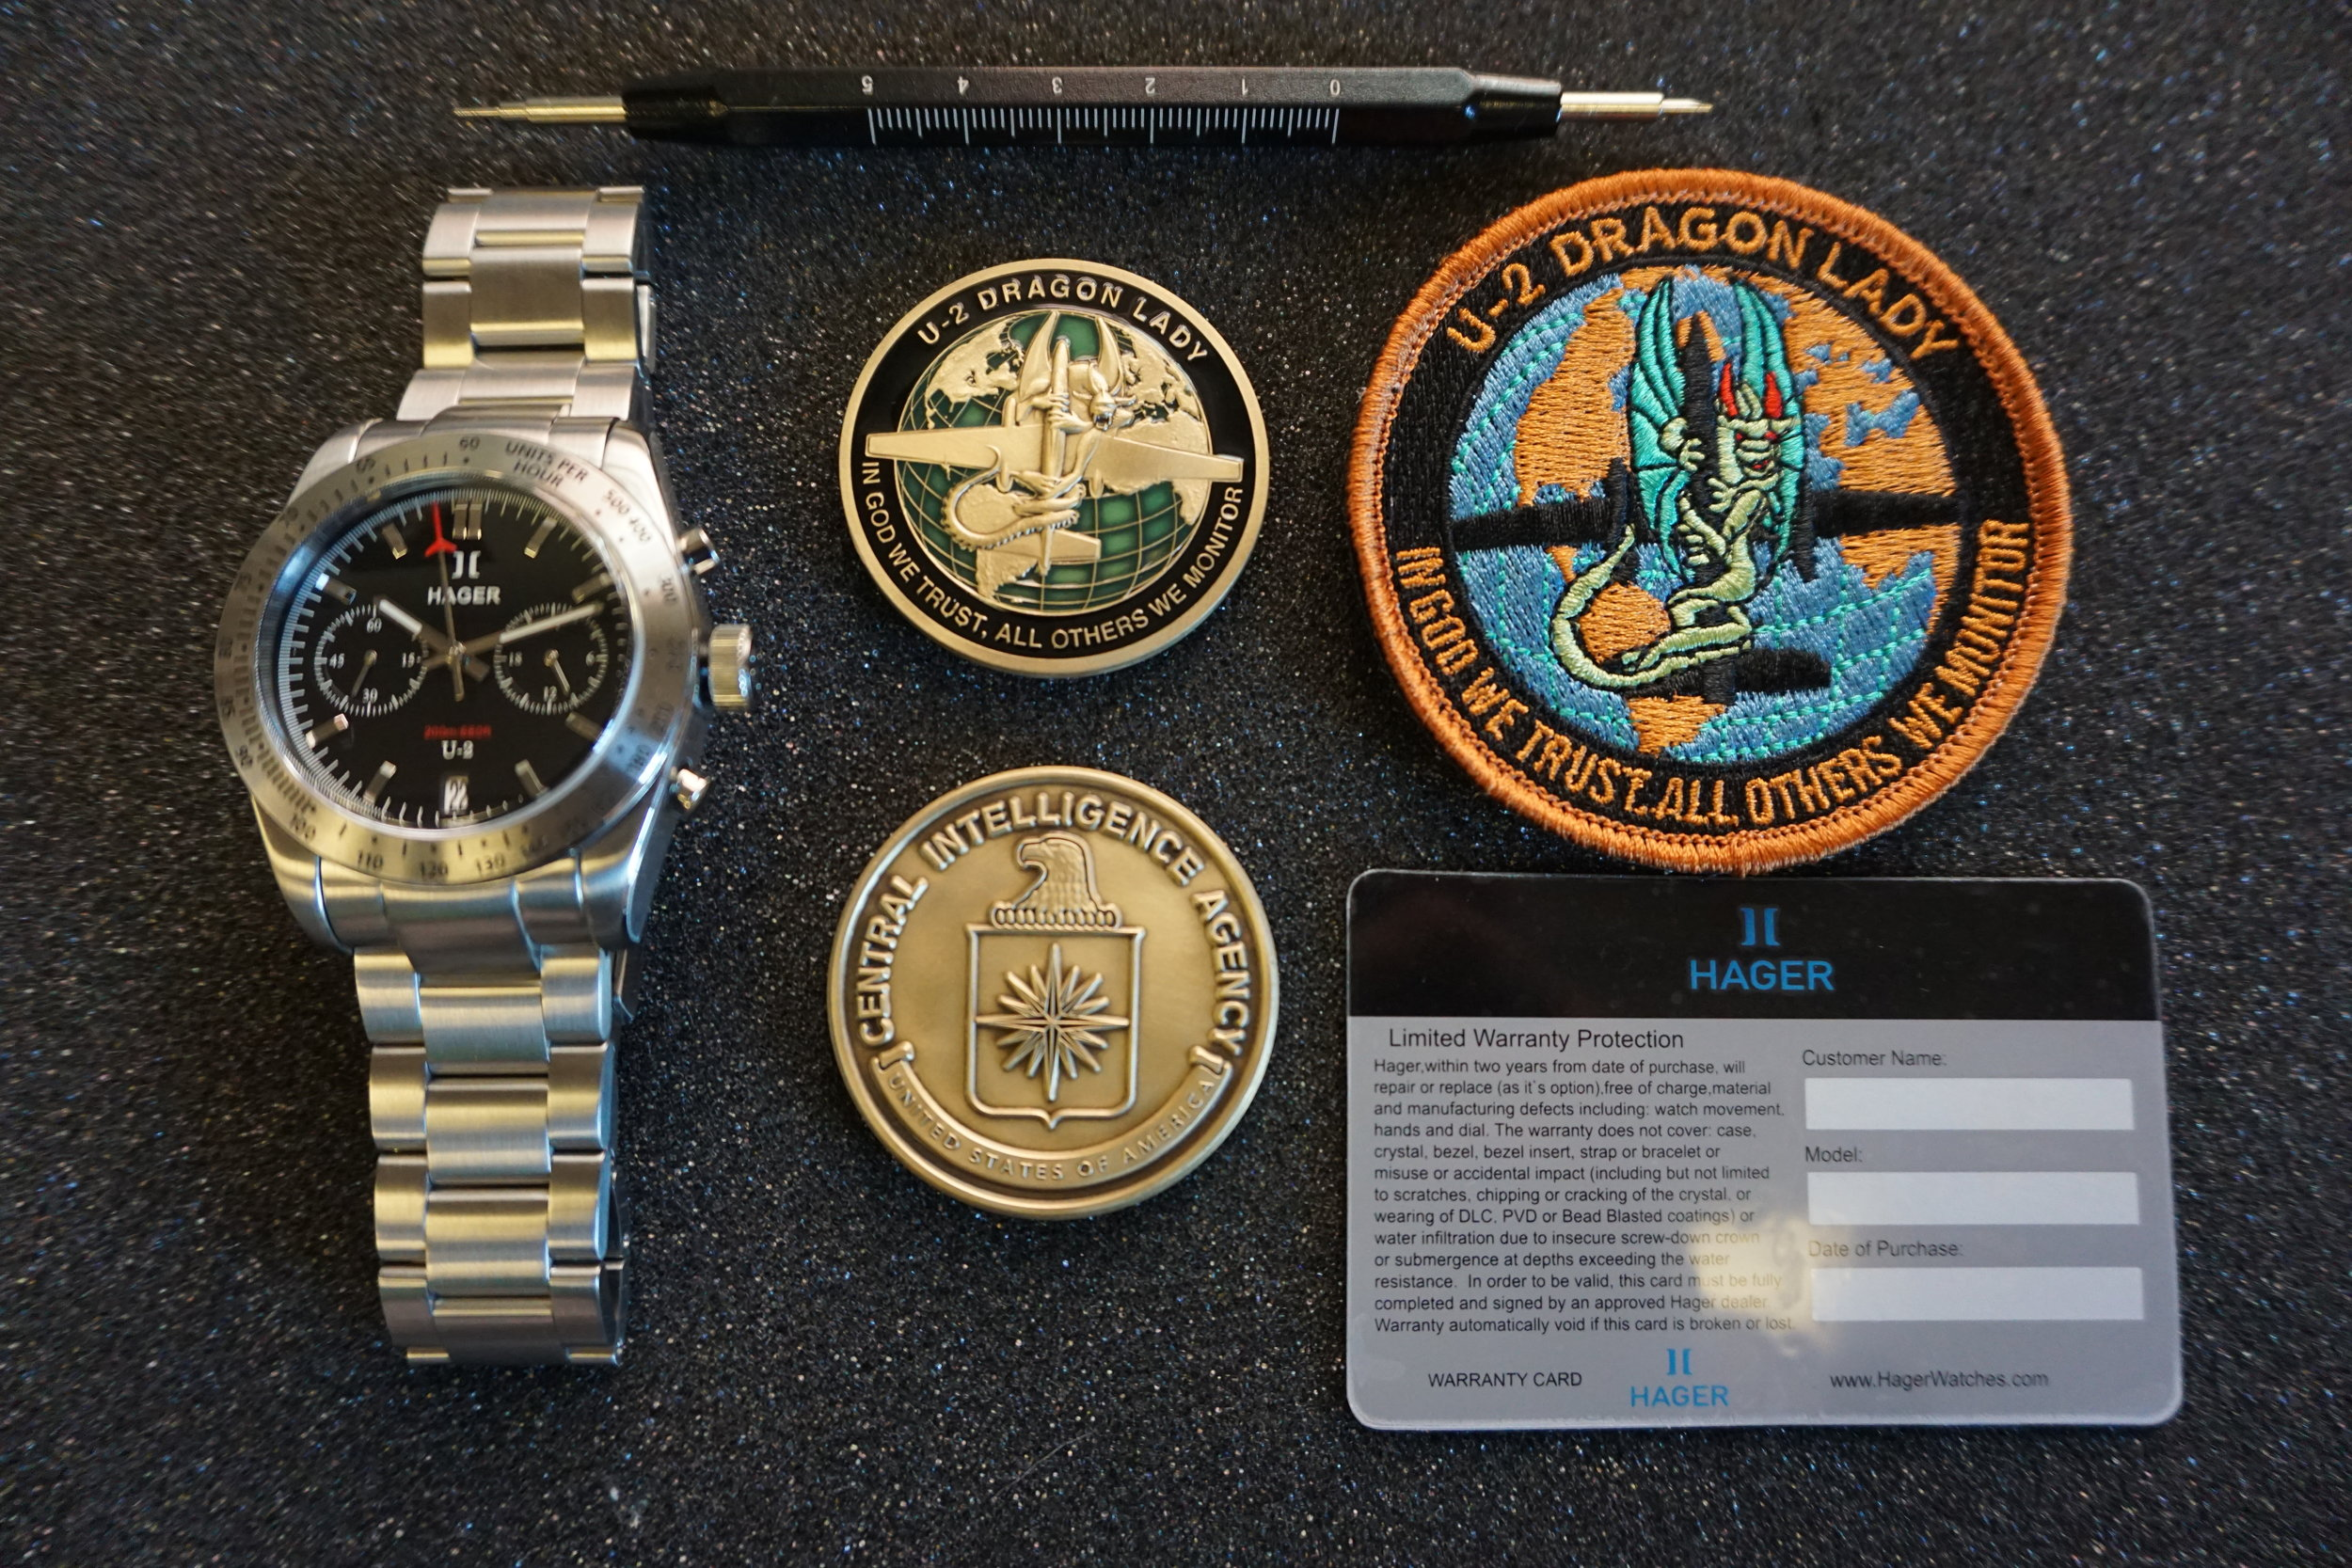 U-2 Chronograph boxed set includes the U-2 Chronograph watch, U-2 Dragon Lady patch, (1) U-2 Coin, bracelet strap tool and warranty card